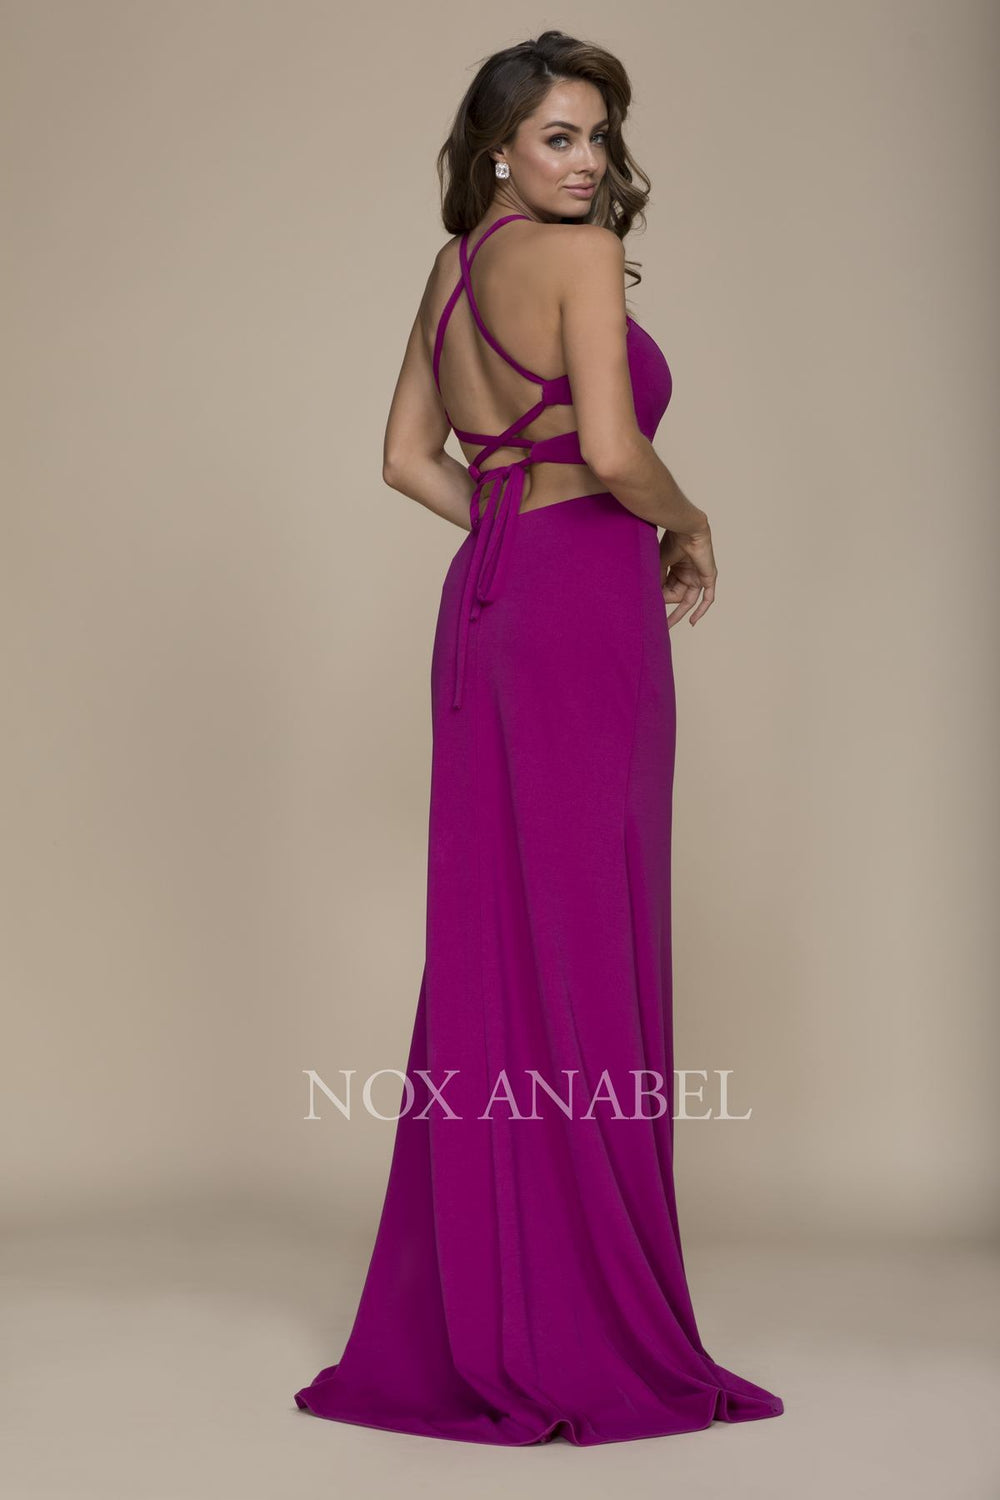 SEXY CUTOUT HALTER NECK LACE-UP BACK SHEATH GOWN PARTY DRESS C026 BY NARIANNA